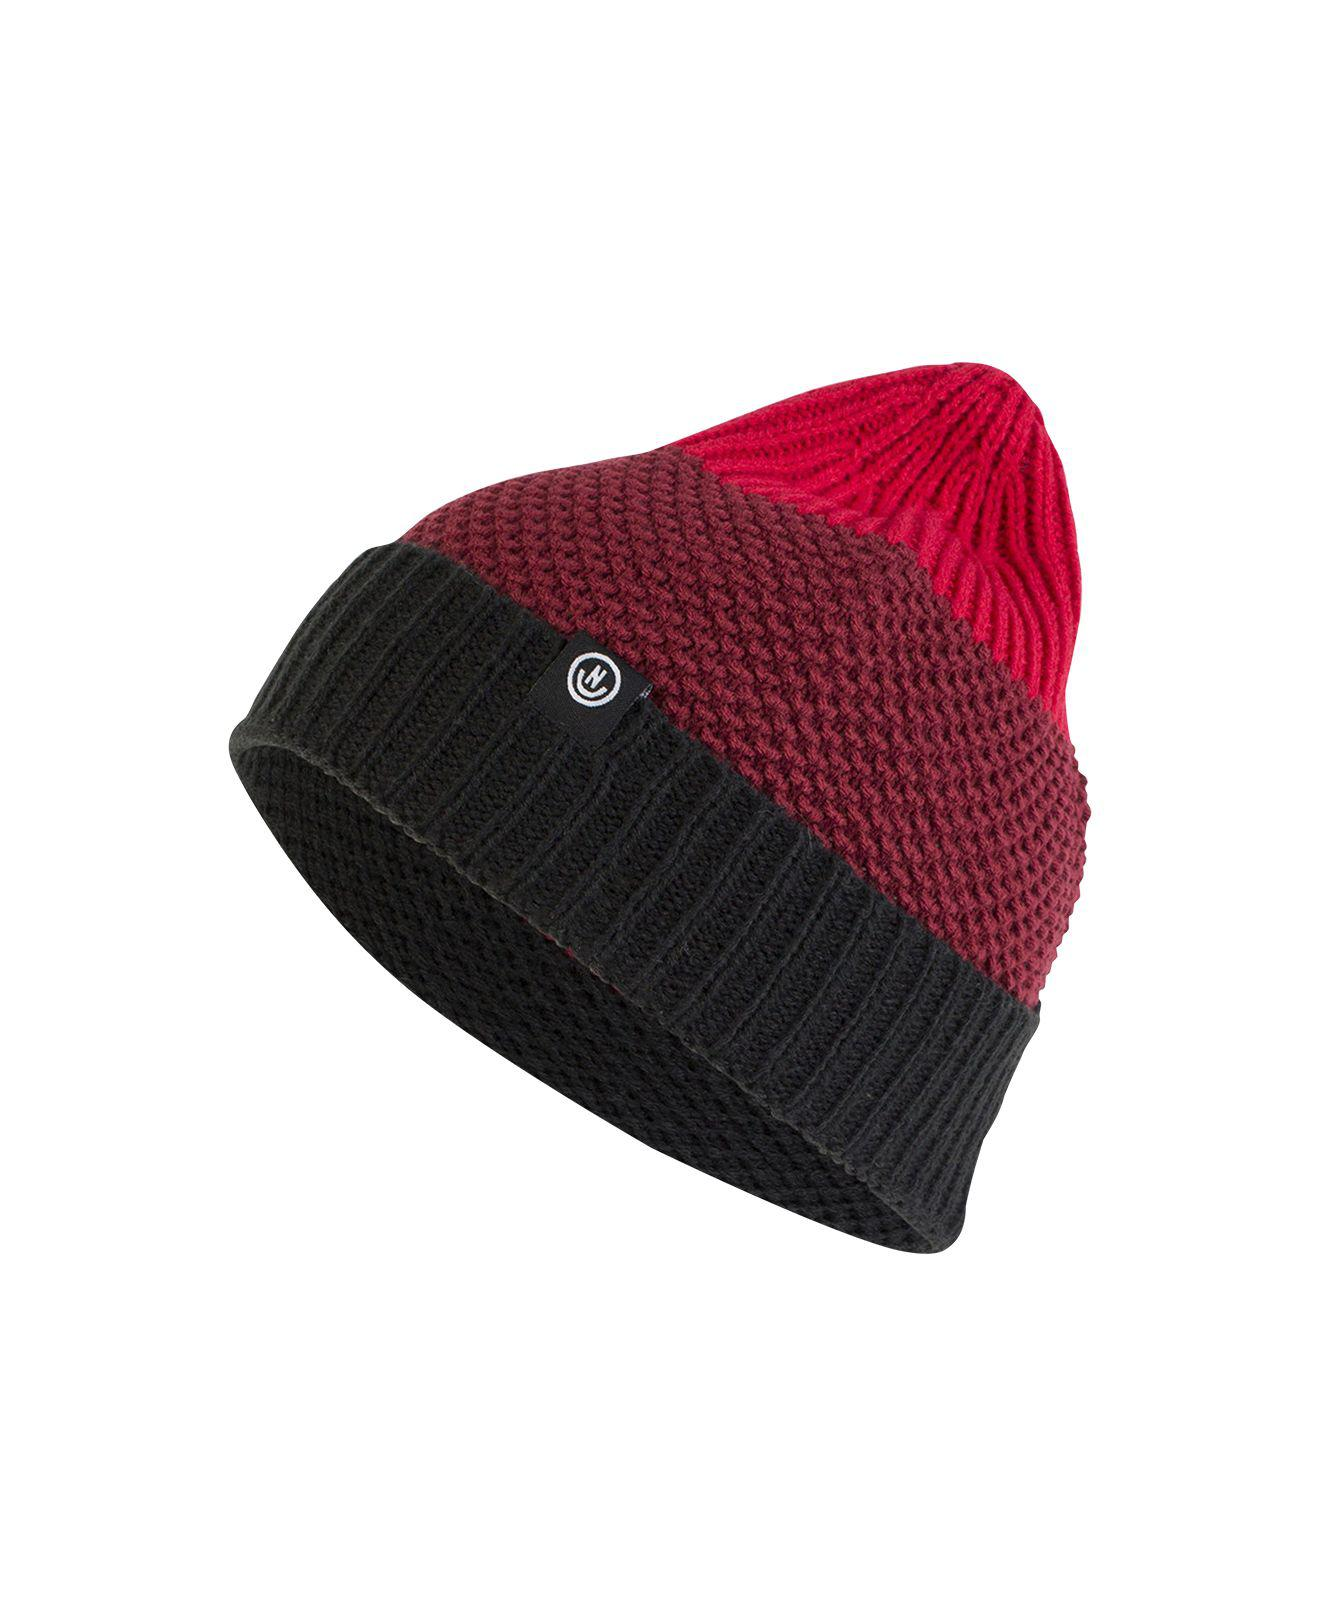 477a26791bd Lyst - Neff Men s Scrappy Colorblocked Textured-knit Beanie in Red ...